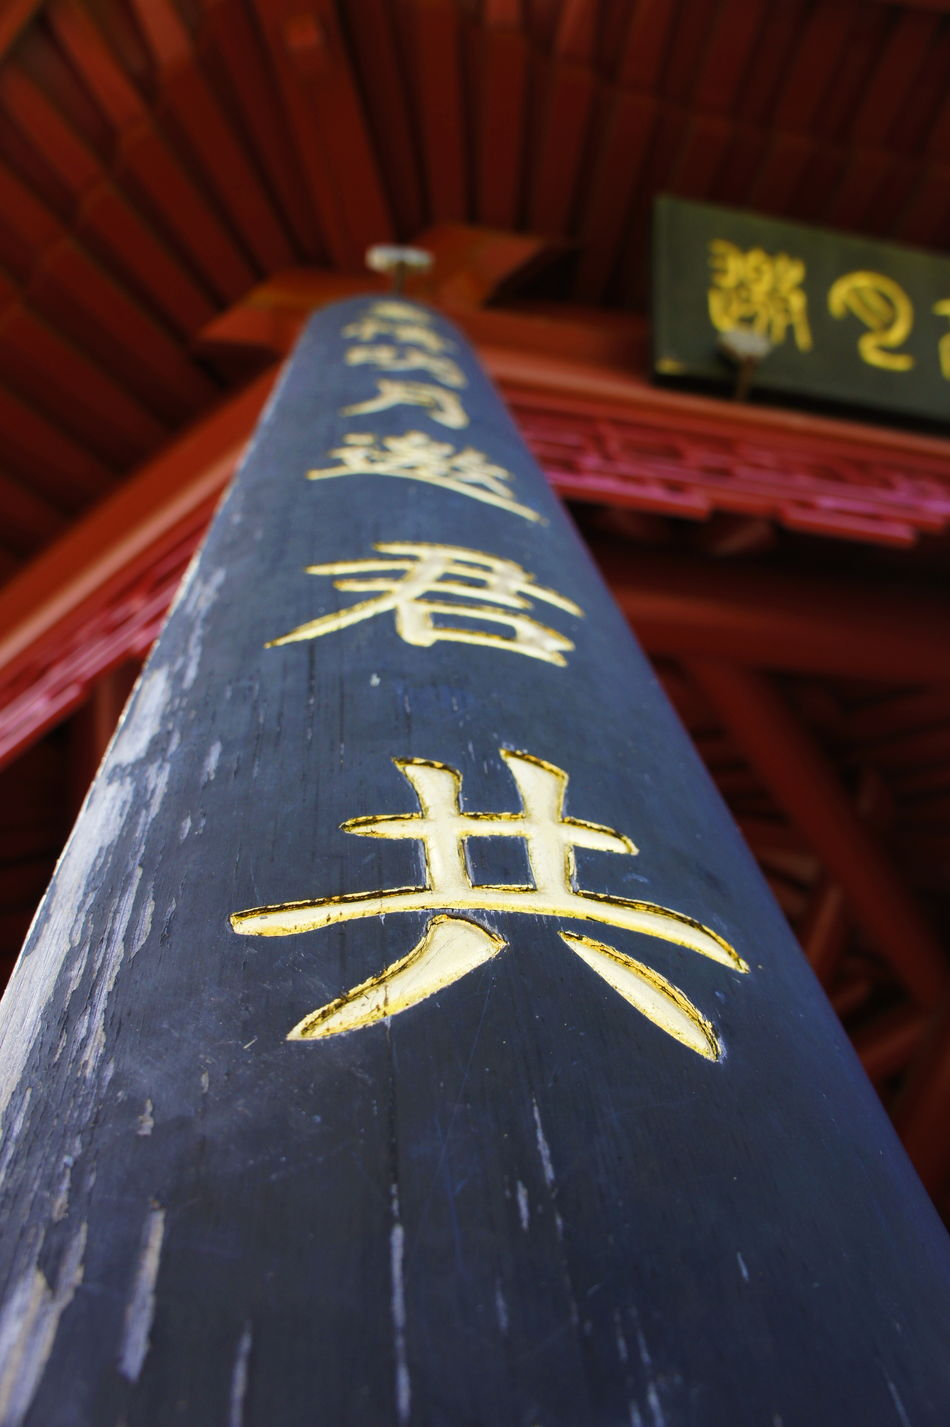 Read the Signs Asian  Berlin Capital Letter Chinese Close-up Communication Day Europe Germany Guidance Gärten Der Welt Holidays Letter No People Outdoors Pagode Pillar Signs Symbols Text Traveling